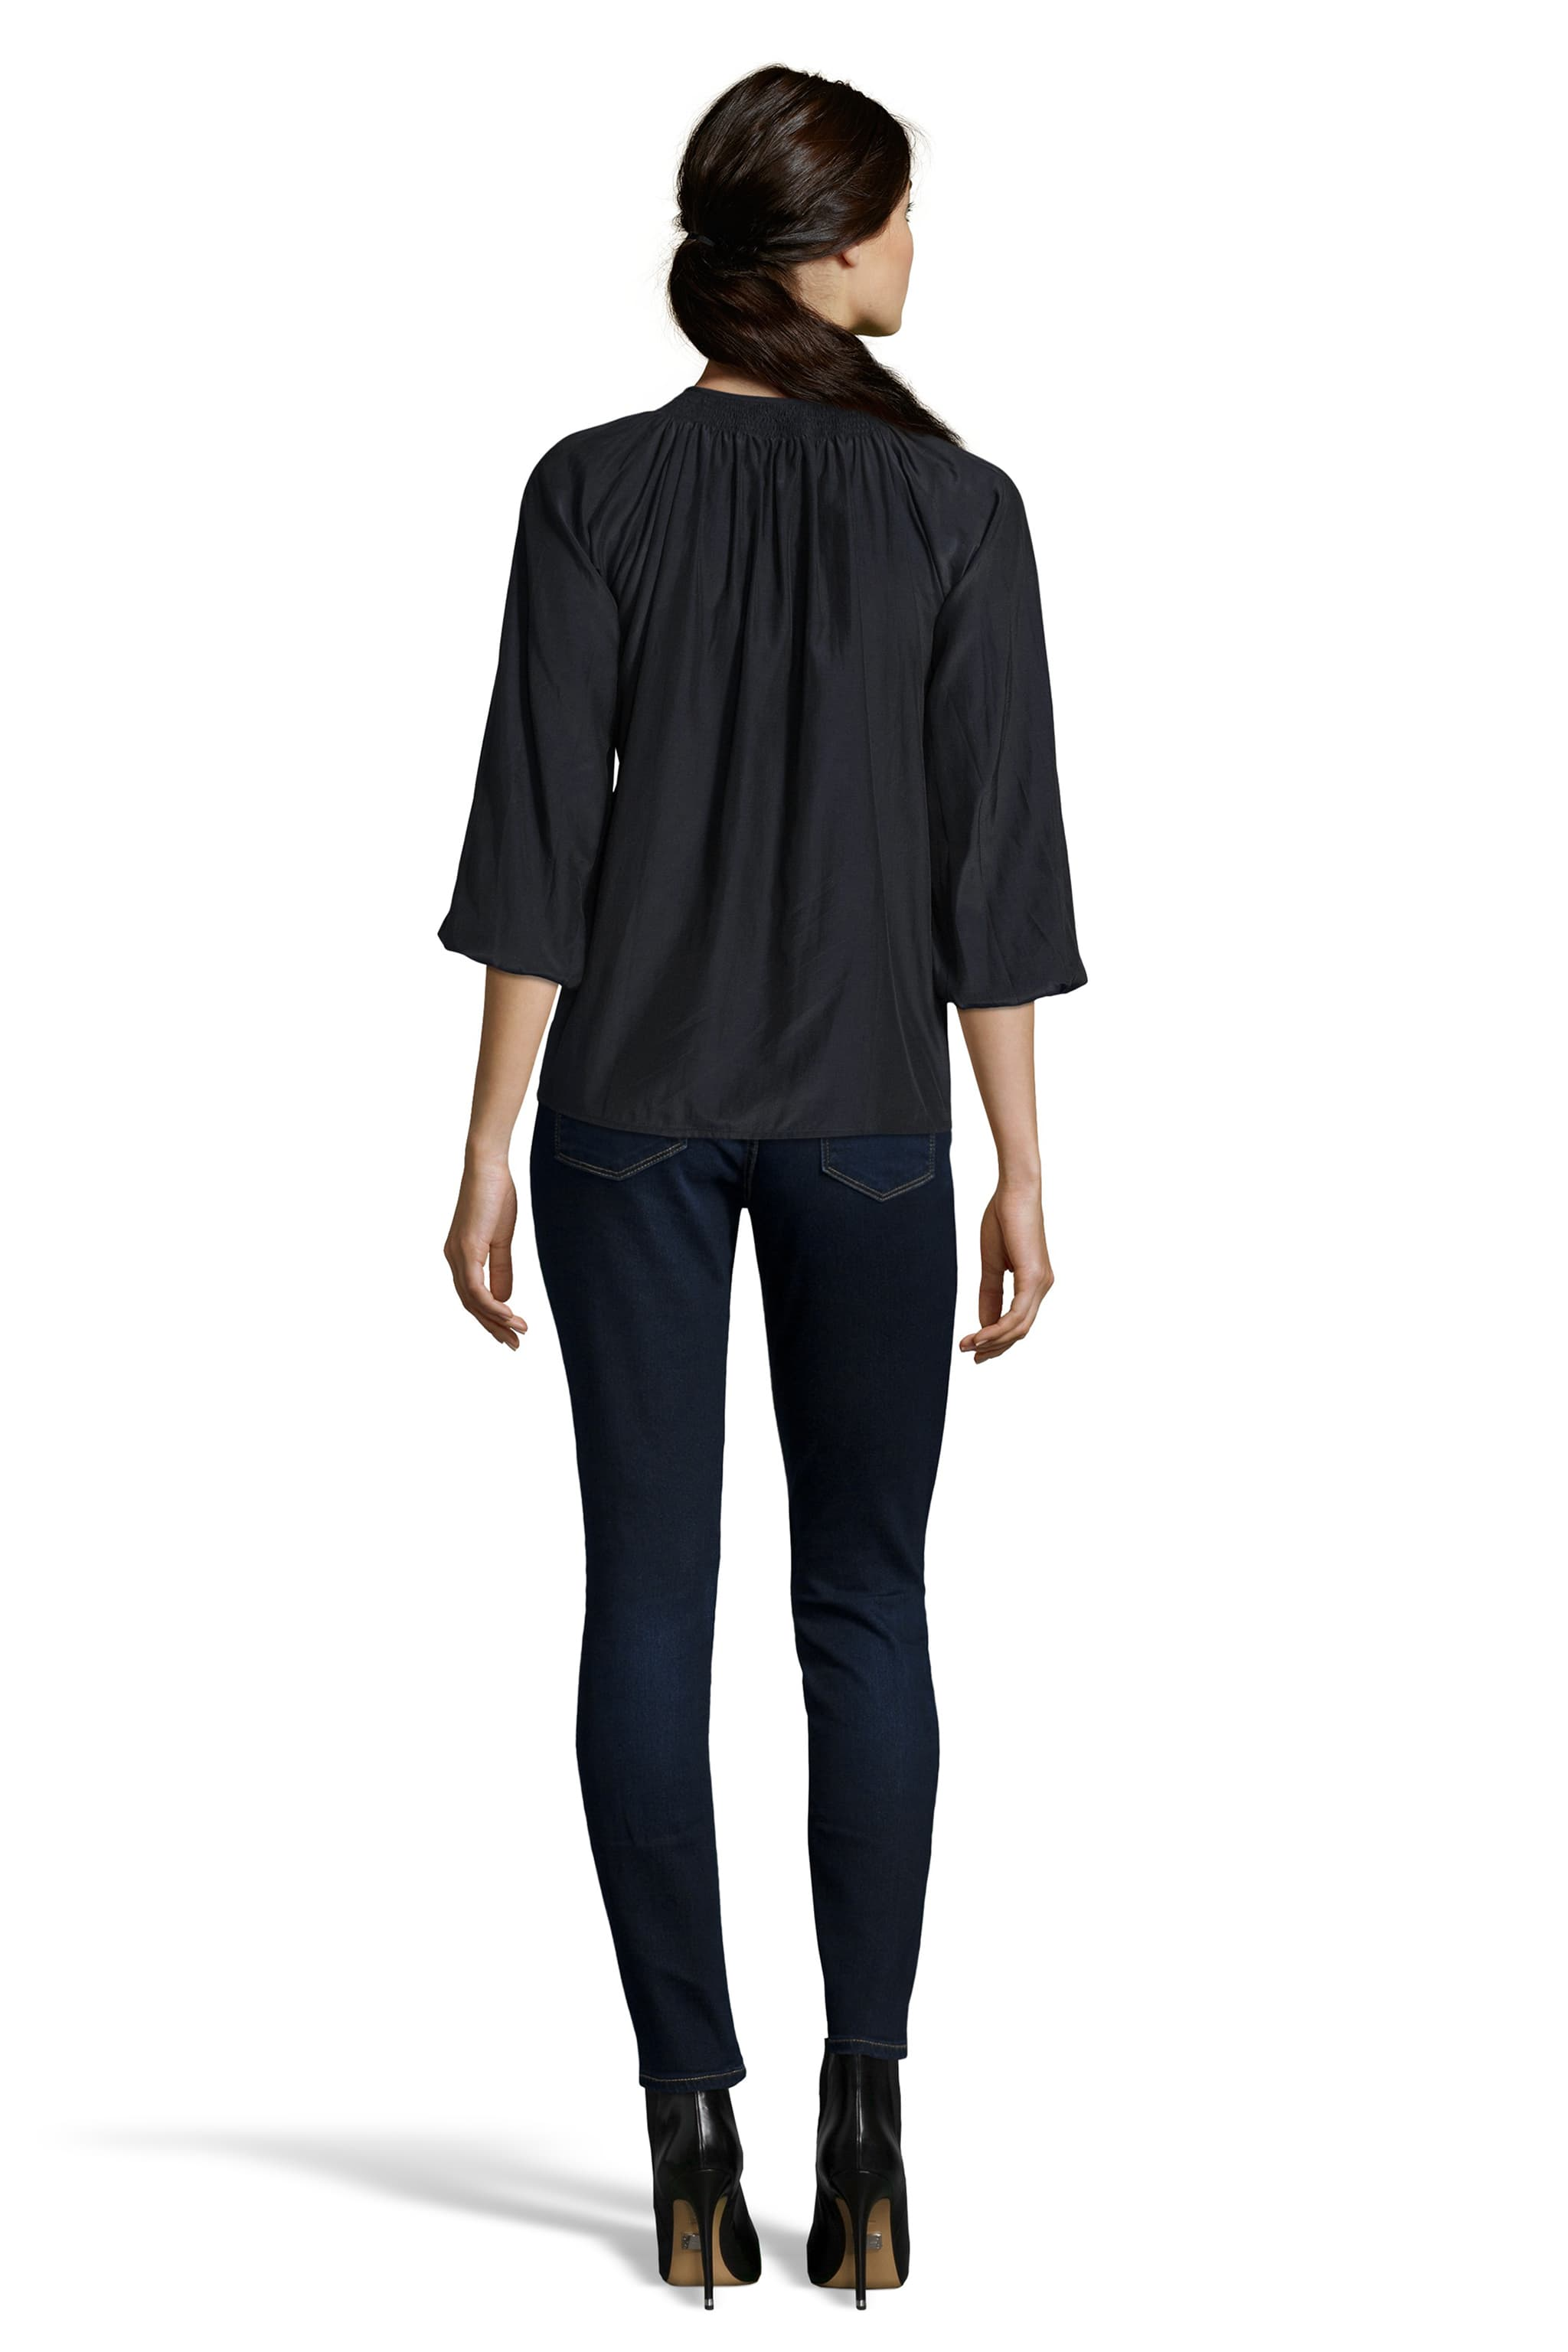 The Classic Blouse | Black Silk Cotton